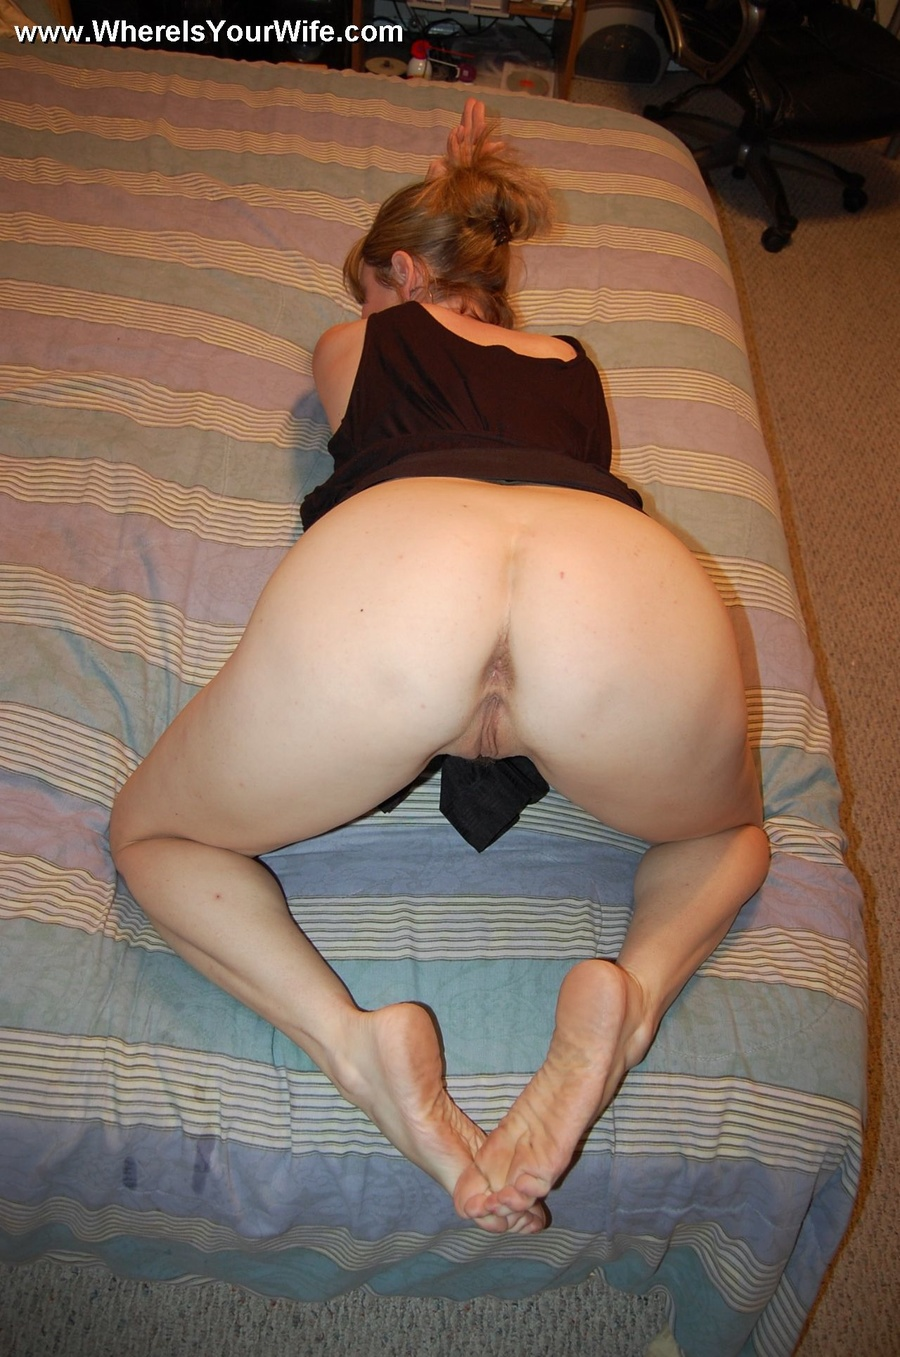 Phone sex search mature taboo mommy milf